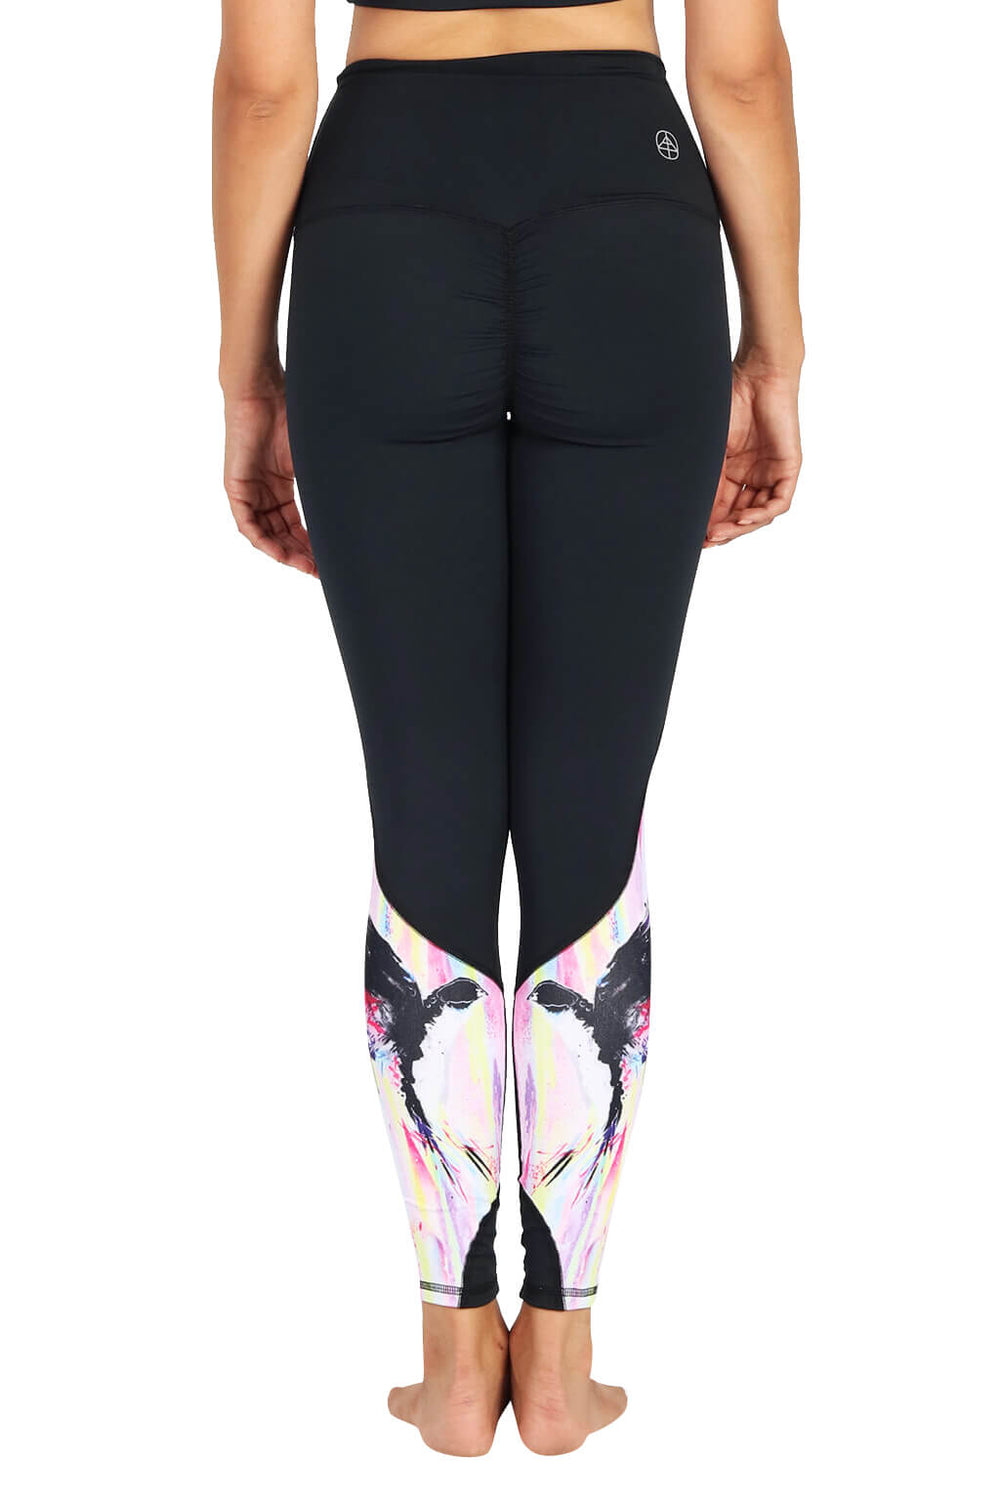 Yoga Leggings by Yogavated Athletic Apparel Duality Sharp Legging